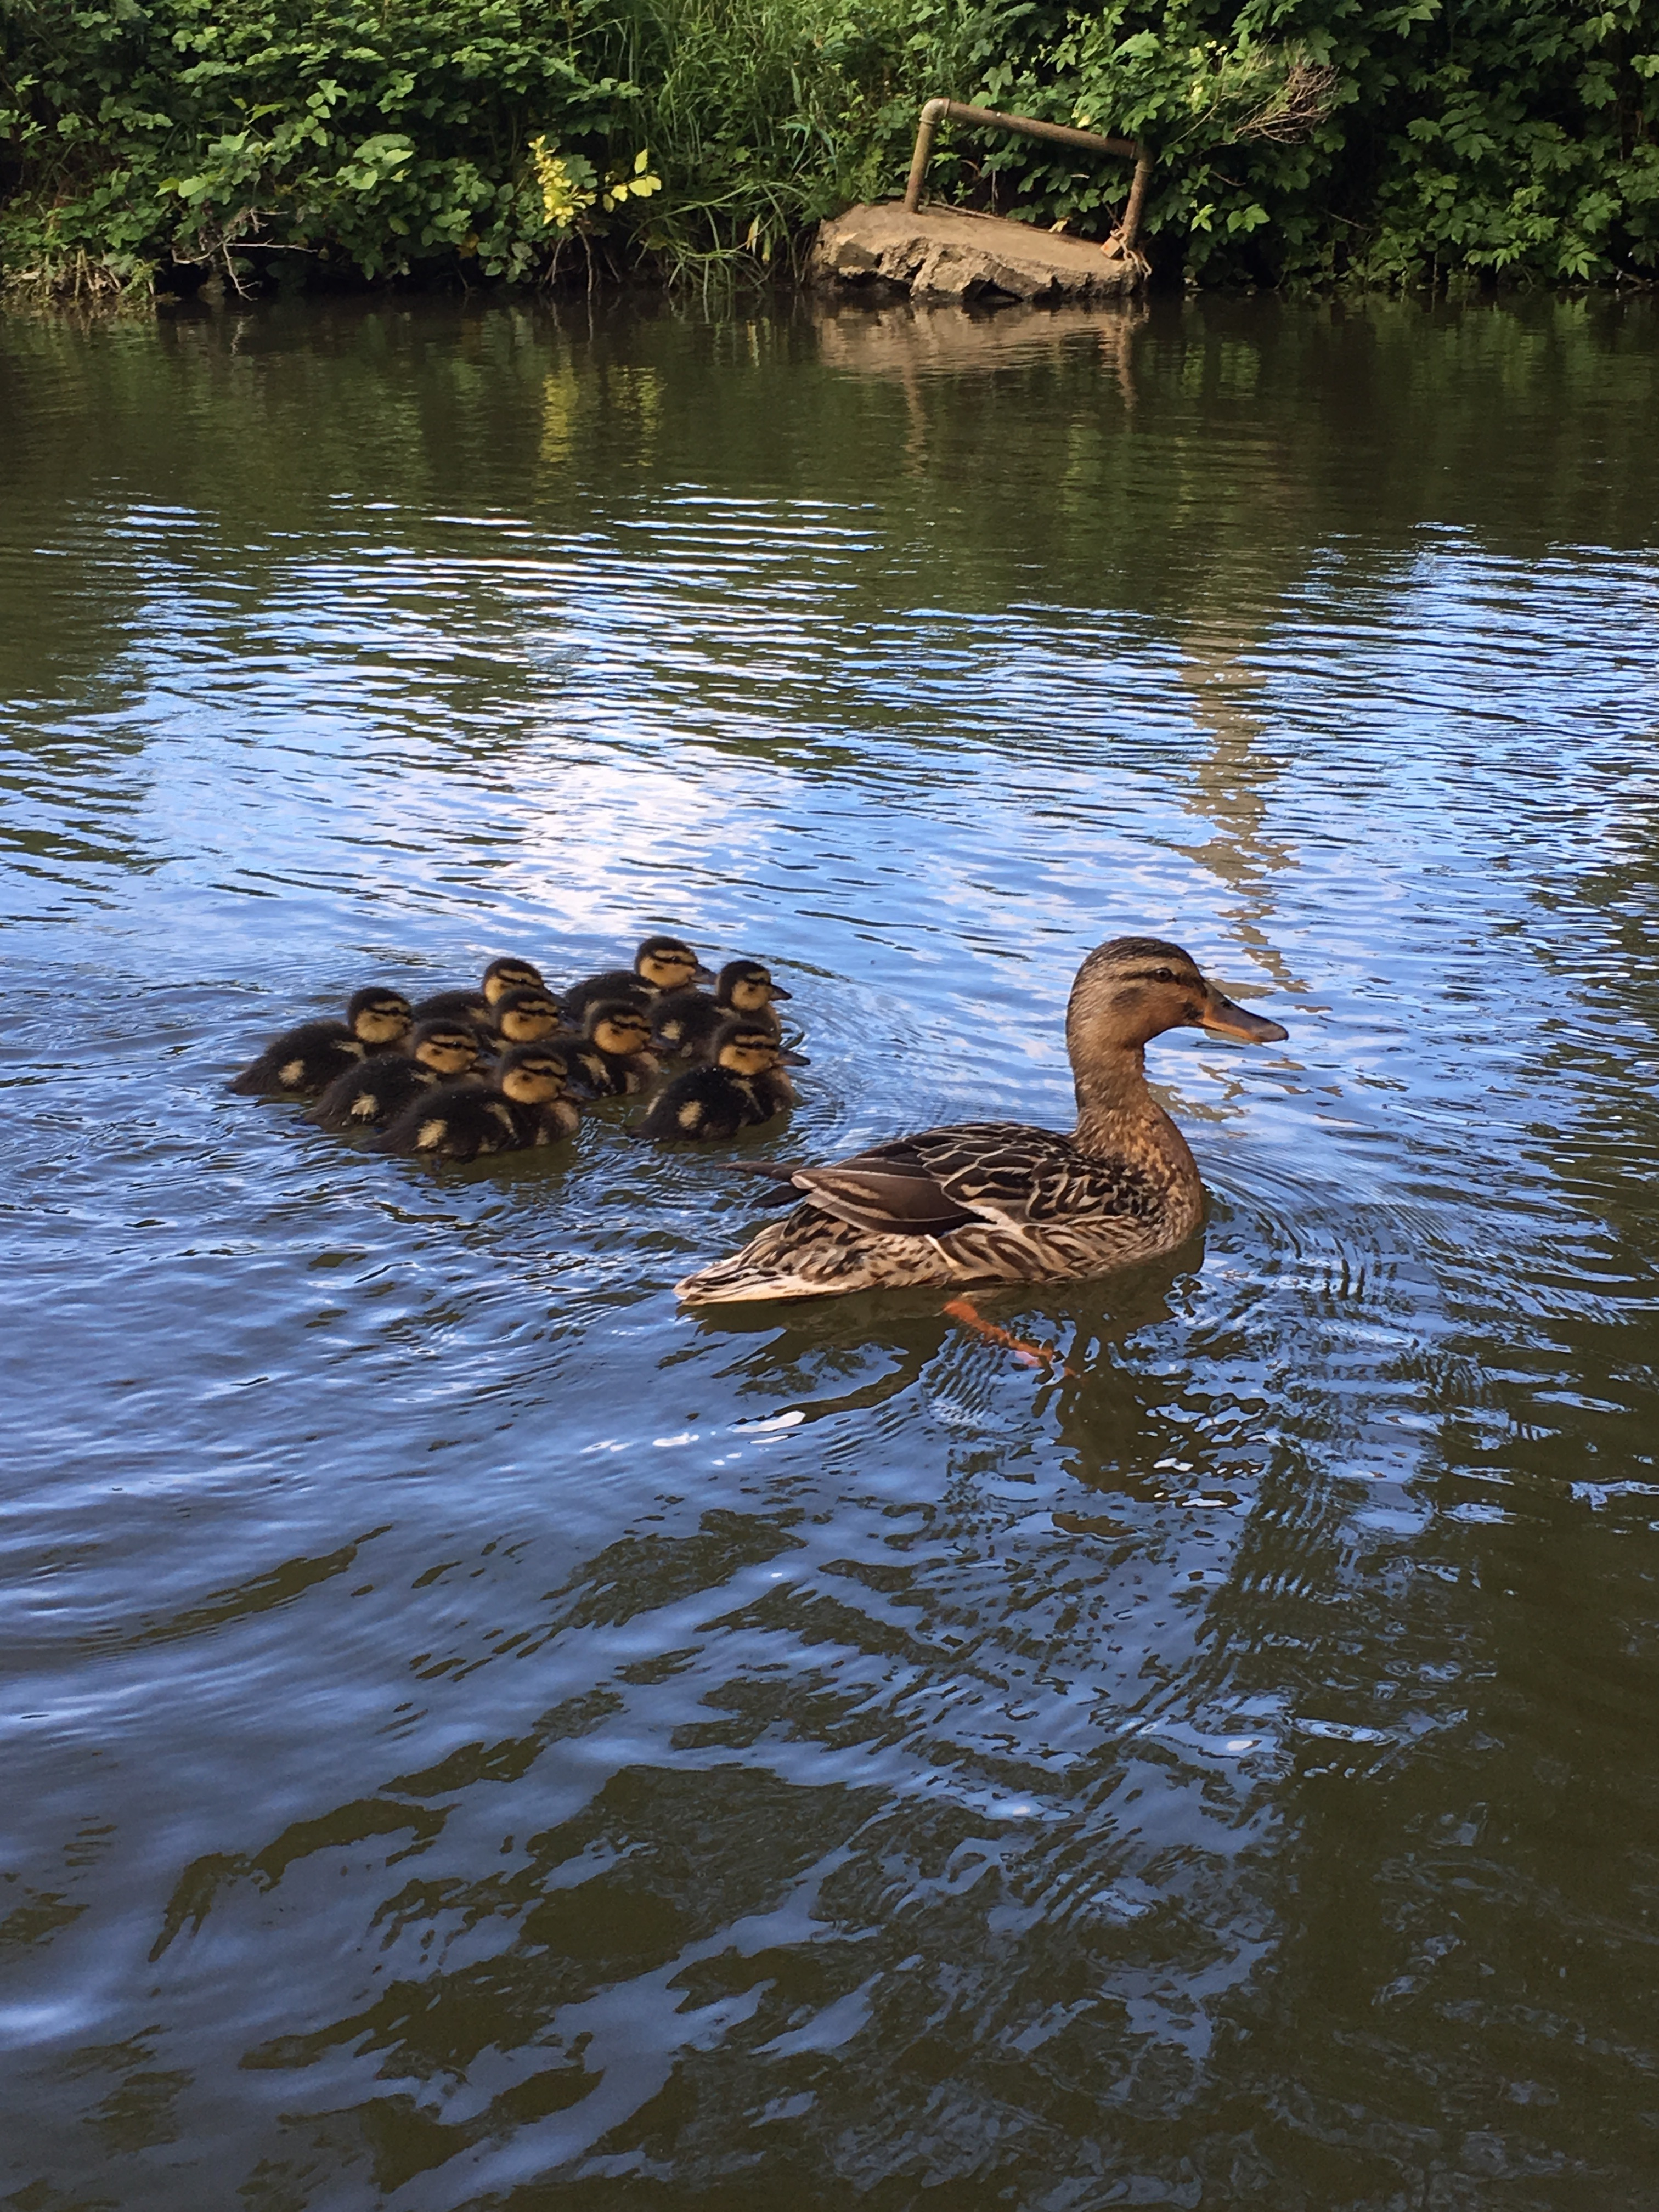 Bird-brained? Scientists show newborn ducklings can acquire notions of 'same' and 'different'